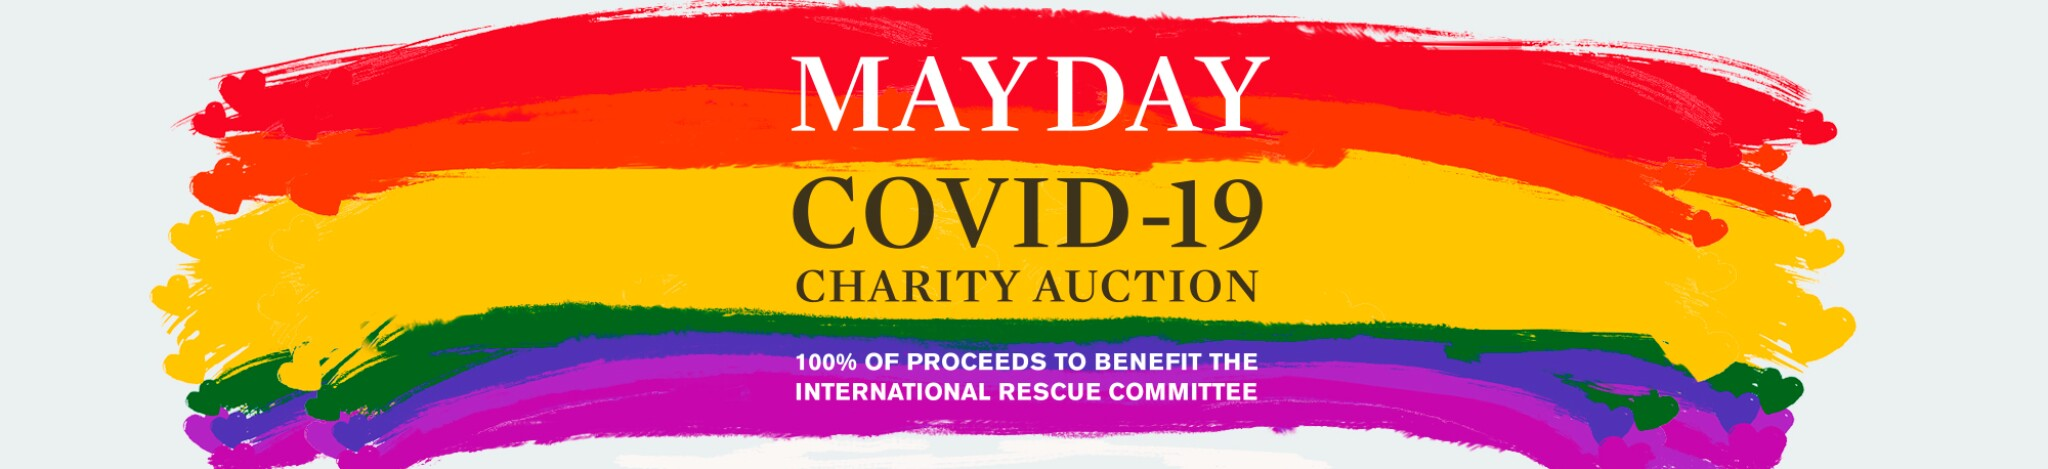 MayDay: Covid-19 Charity Auction